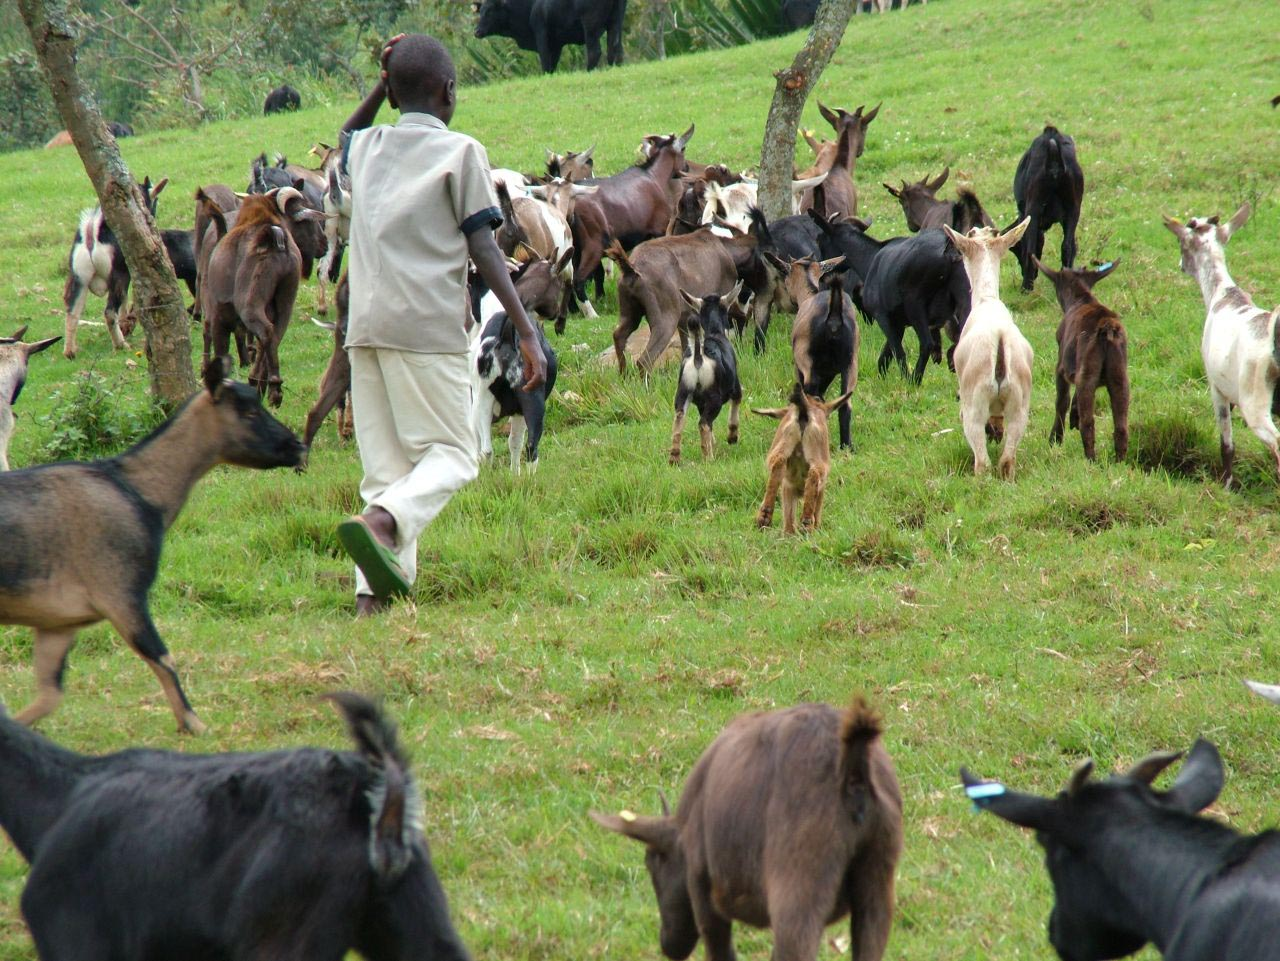 File:Animal husbandry in Congo.jpg - Wikipedia, the free encyclopedia